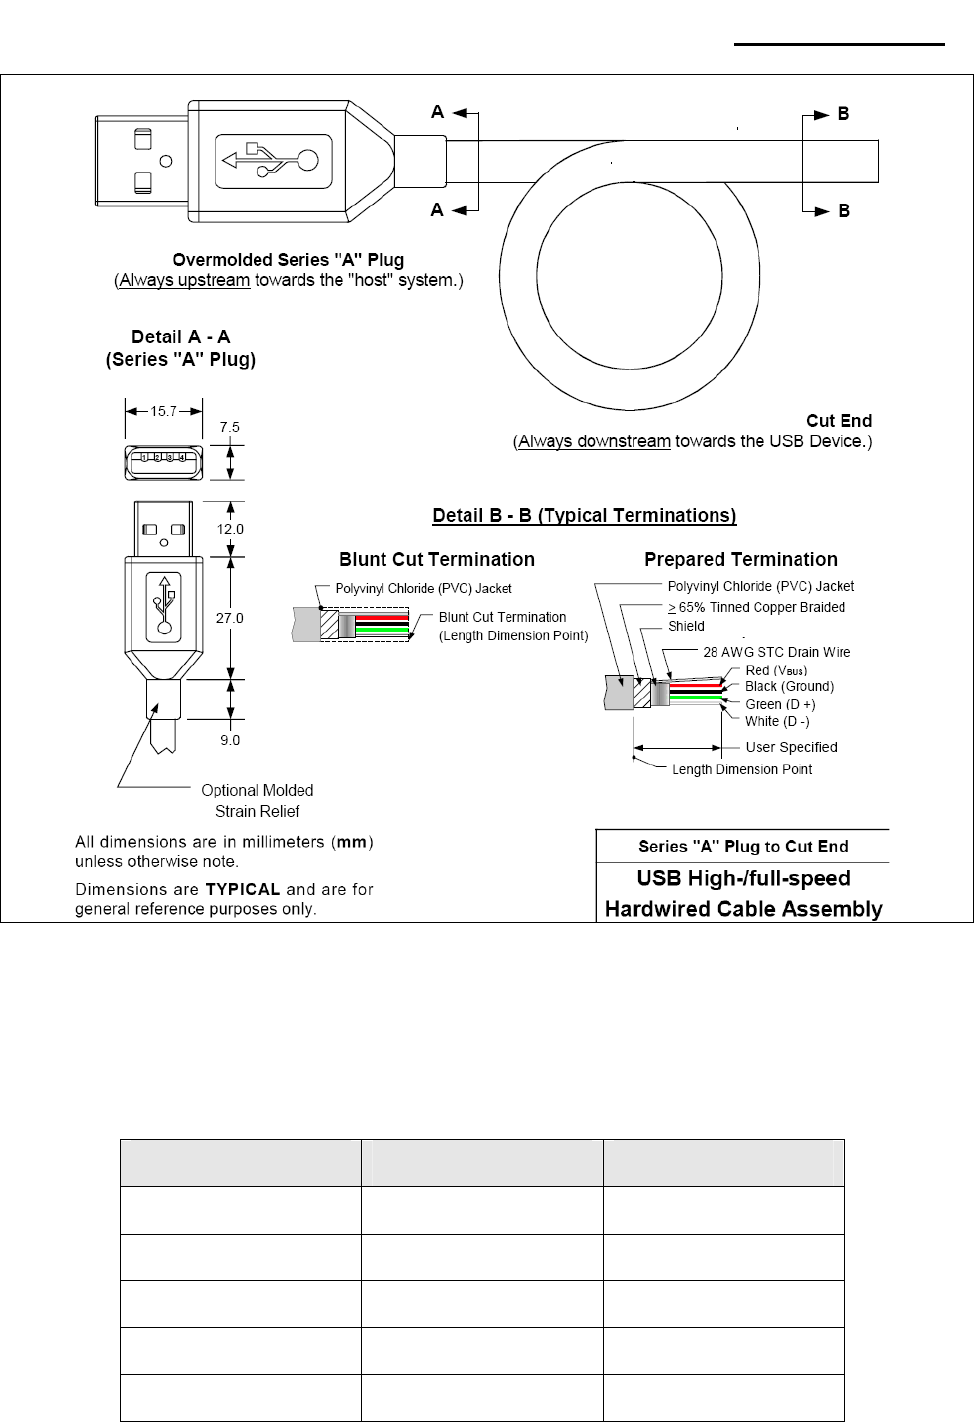 Bixolon Srp F310 312 Users Manual Svc Rev 1 00 865 Usb Wiring Diagram 100 28